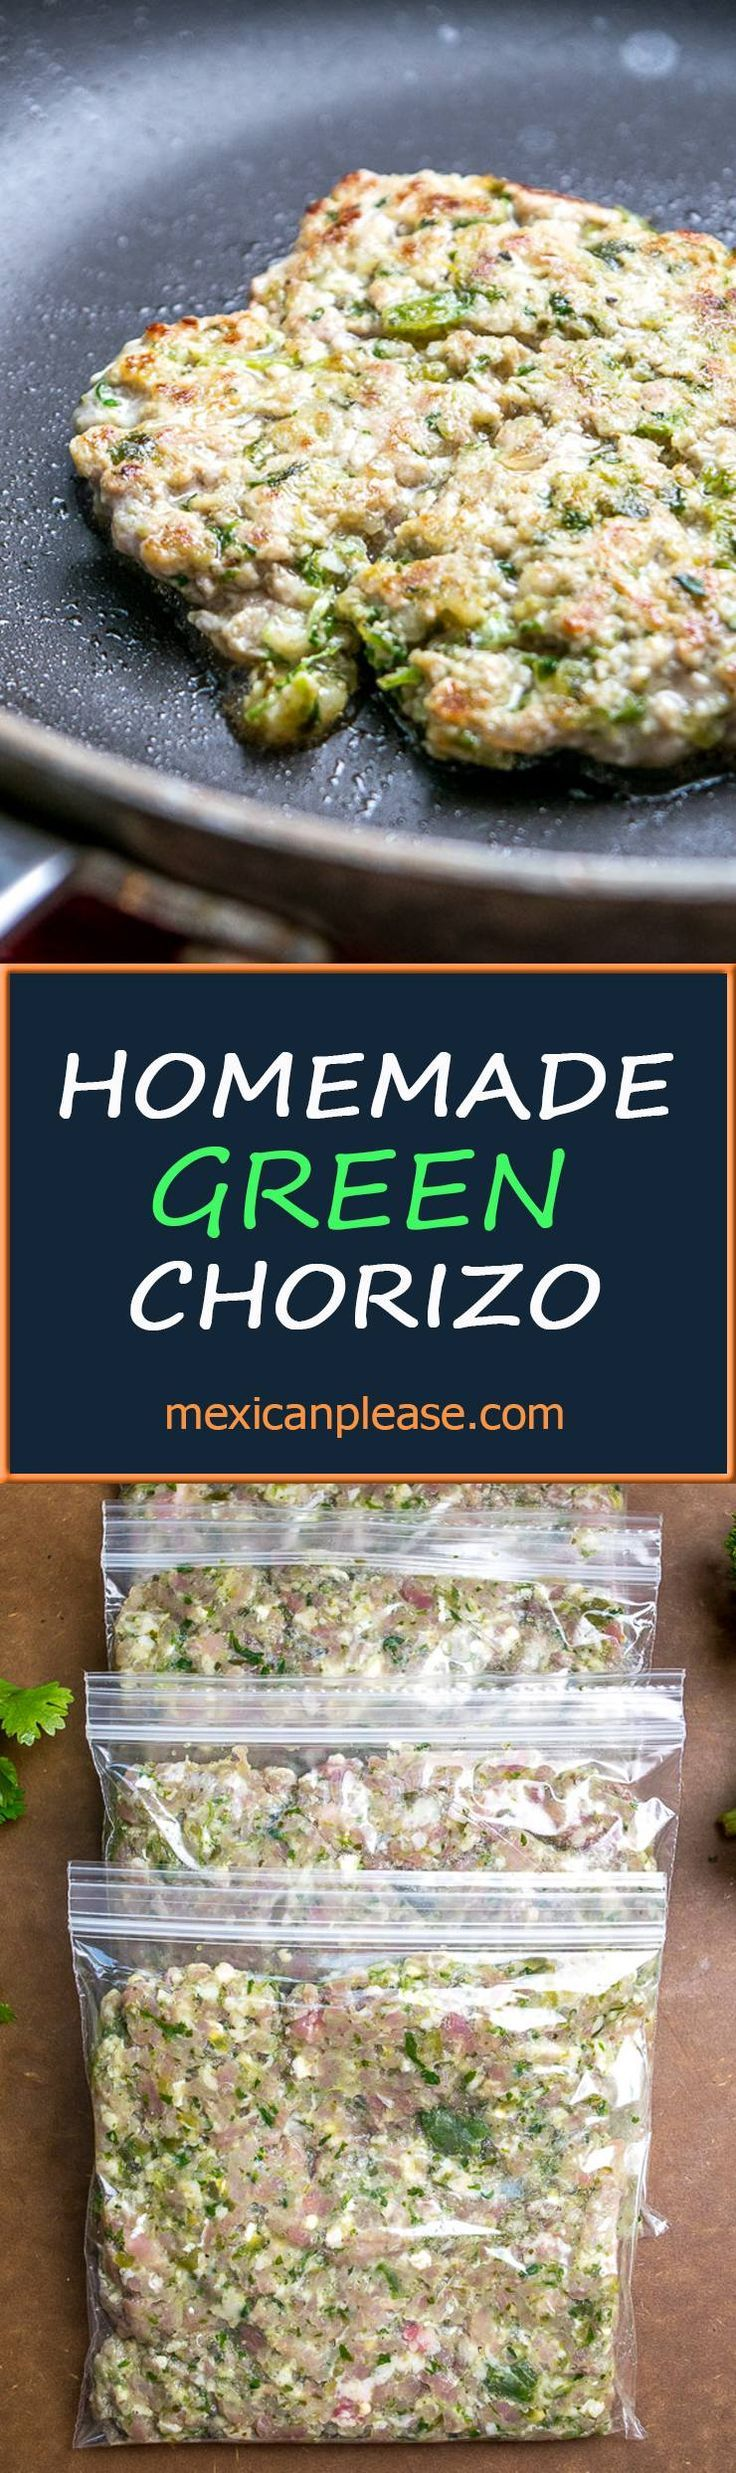 Here's a recipe for a vibrant homemade green chorizo that uses poblanos and serranos to really spice things up.  Perfect for egg dishes, tacos, and burritos.  It's surprisingly easy to make too!   mexicanplease.com